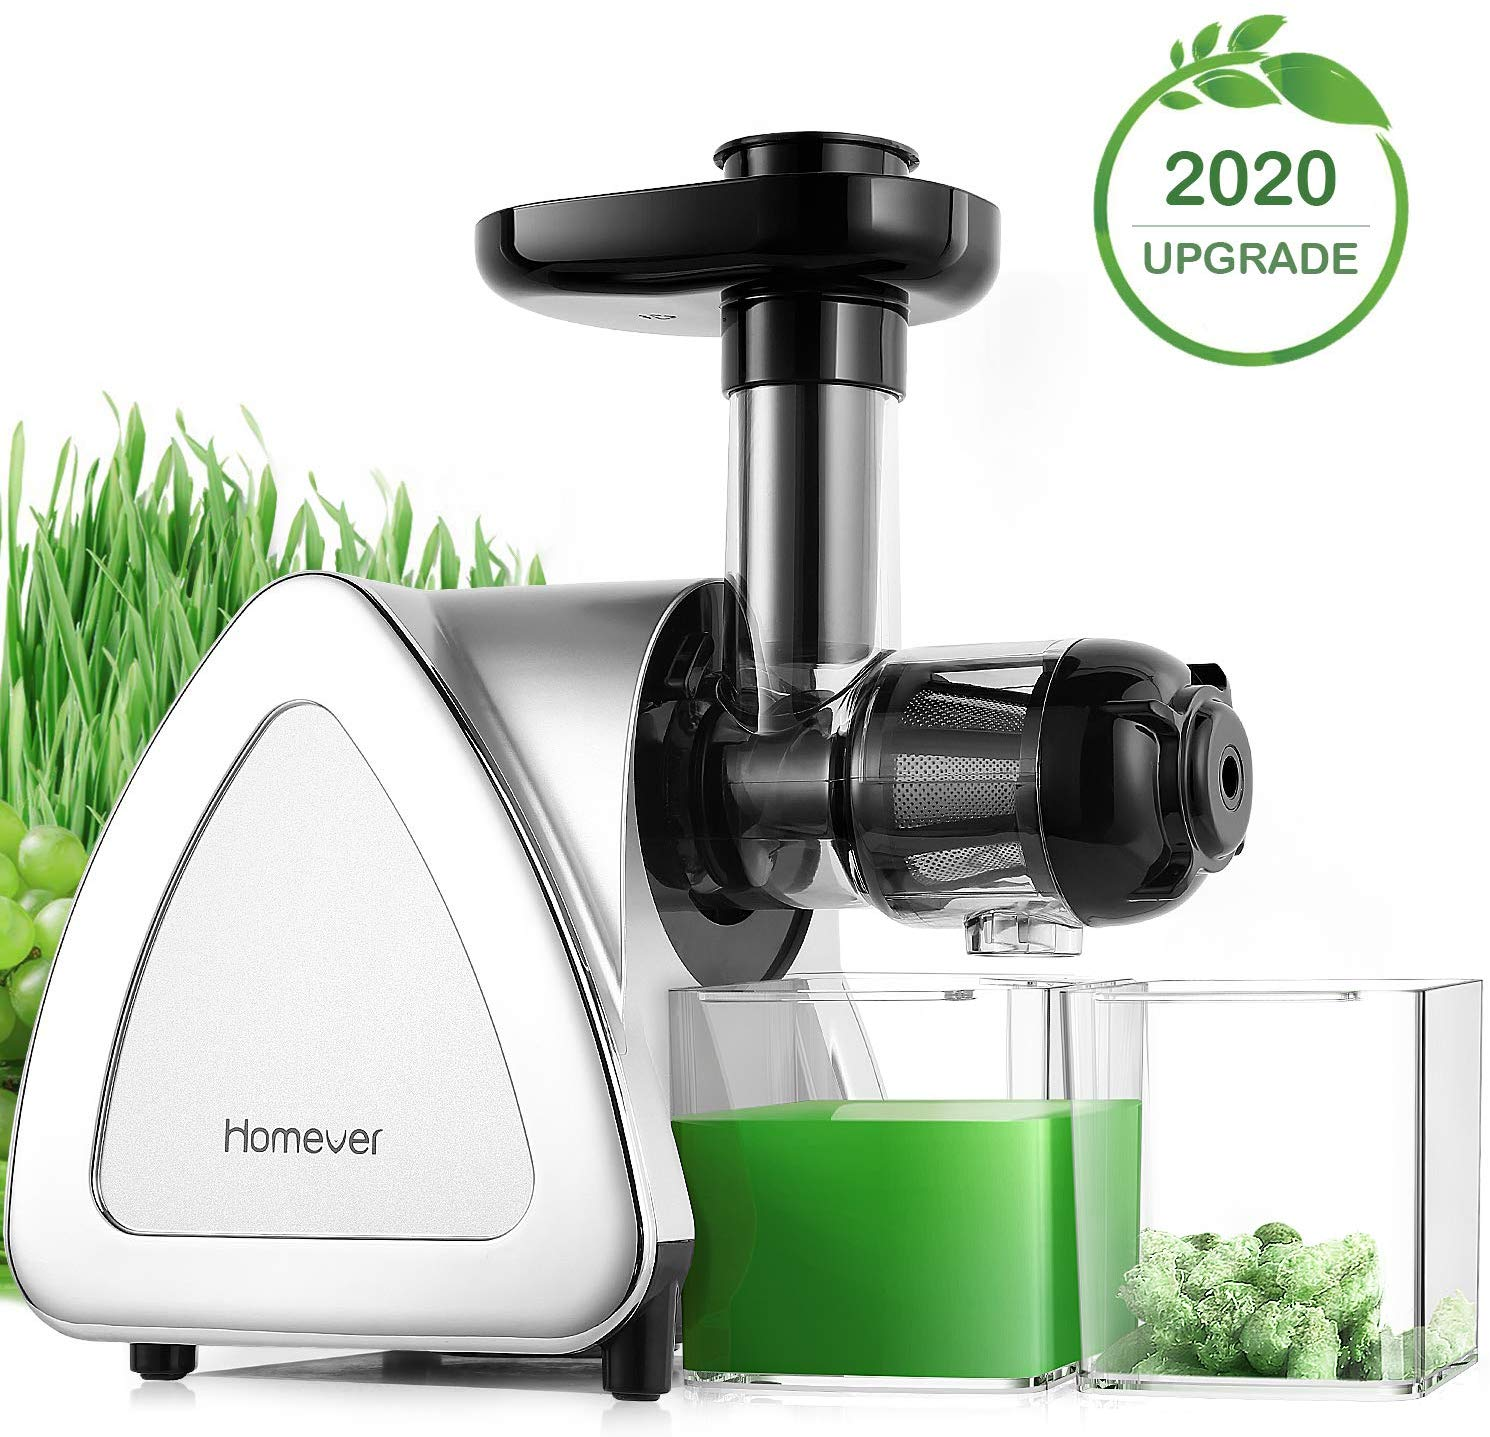 Juicer Machines, Homever Slow Masticating Juicer Extractor Easy to Clean, Cold Press Juicer for All Fruit and Vegetable, BPA-Free, Quiet Motor and Reverse Function with Juice Jug & Brush, Silver